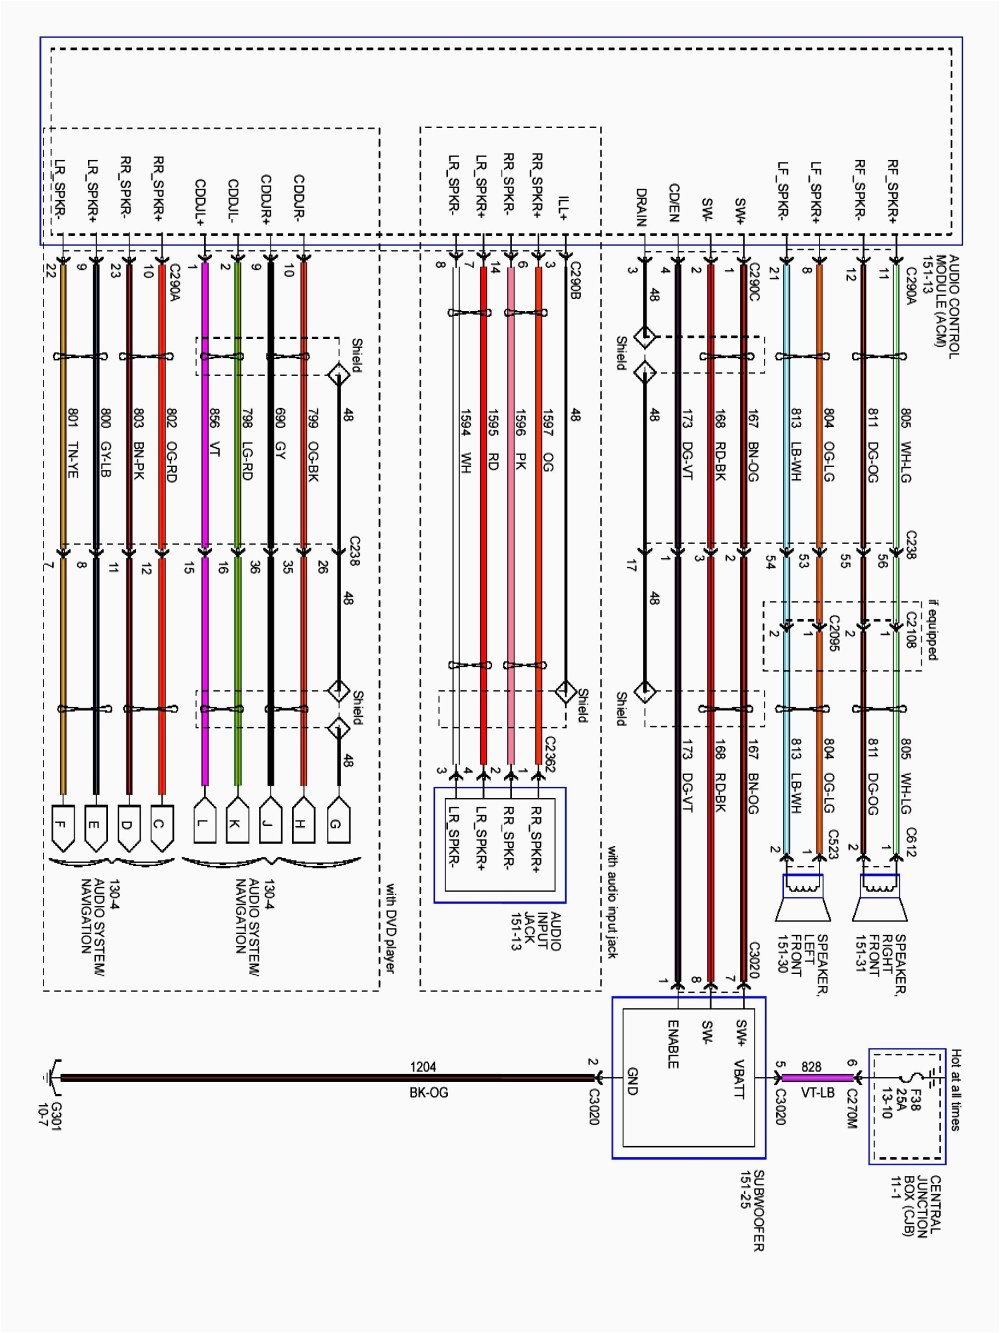 medium resolution of 2008 ford f 150 radio wire diagram wiring diagram world 2008 ford f150 lariat radio wiring